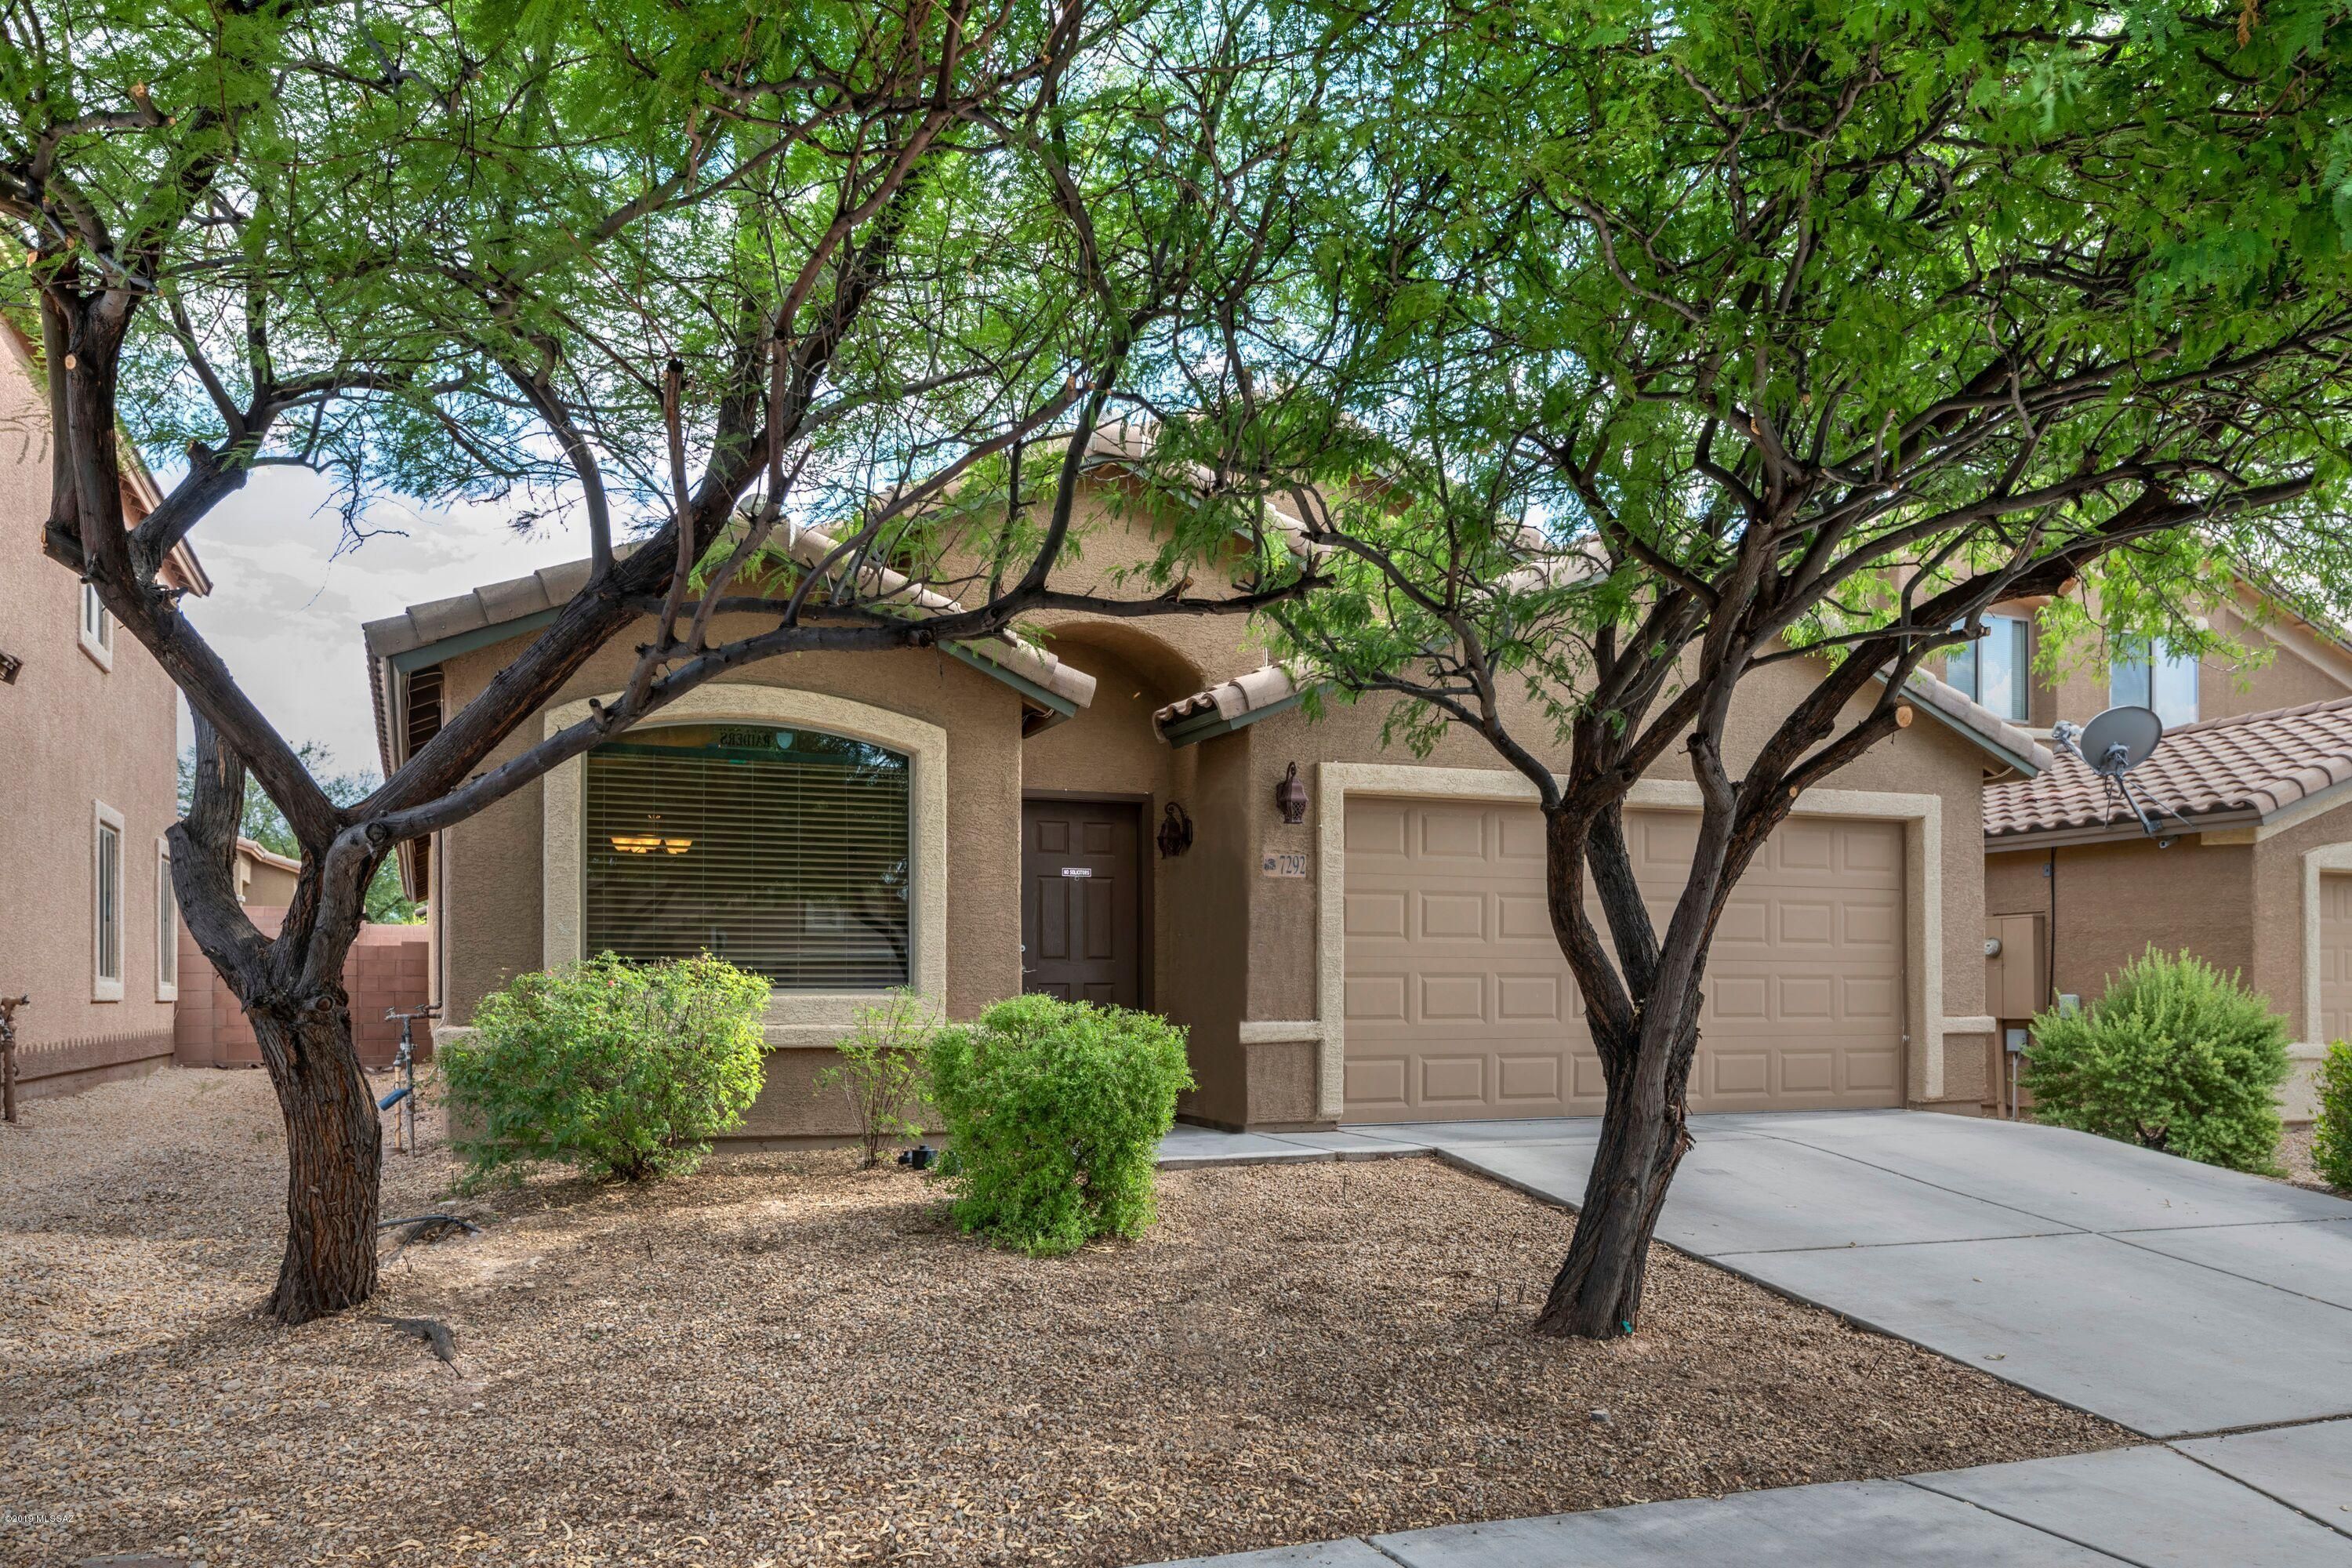 Photo of 7292 E Alderberry Street, Tucson, AZ 85756